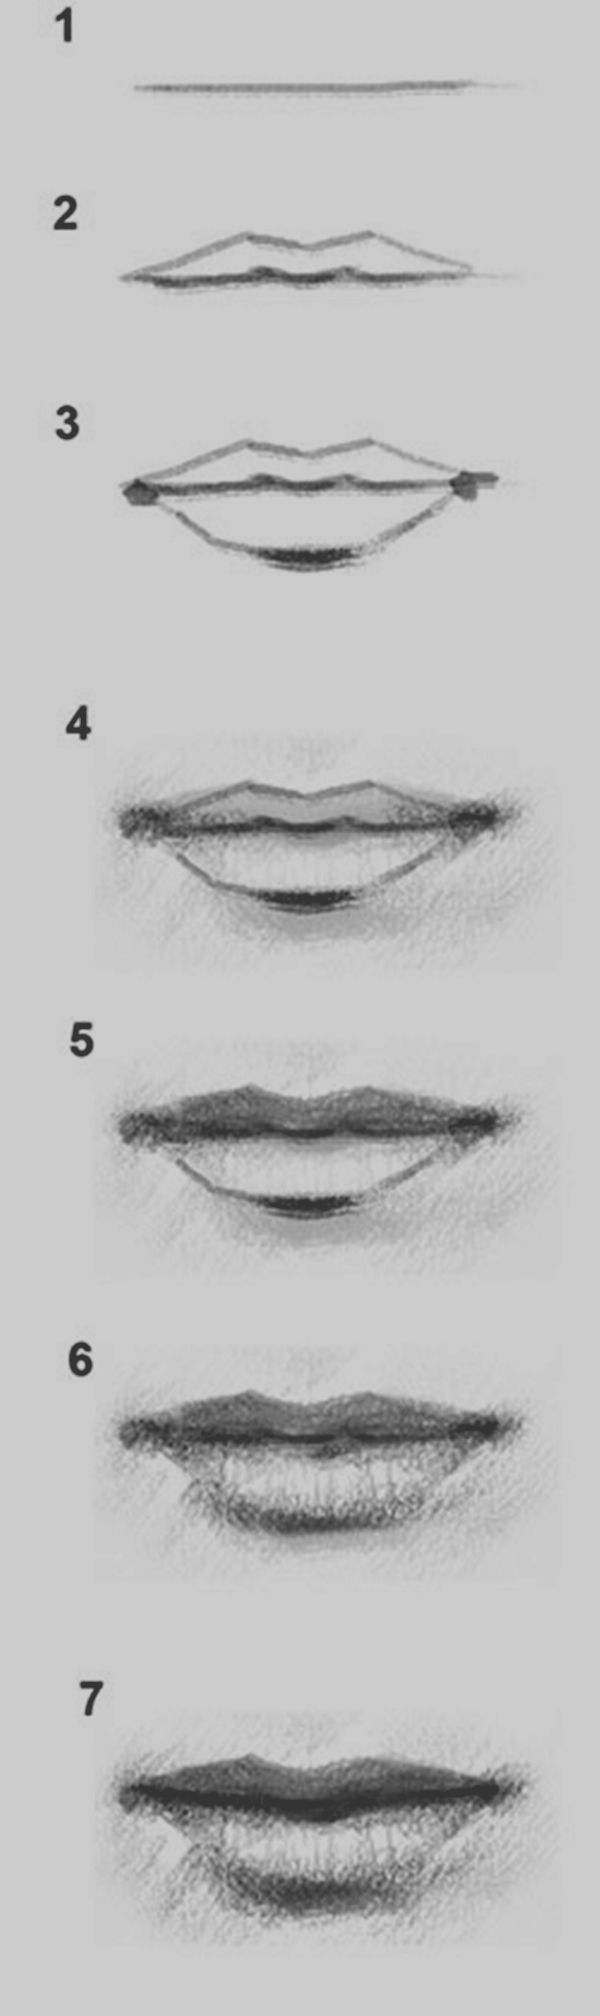 Drawn pice lip Drawings Practice Easy To Pinterest